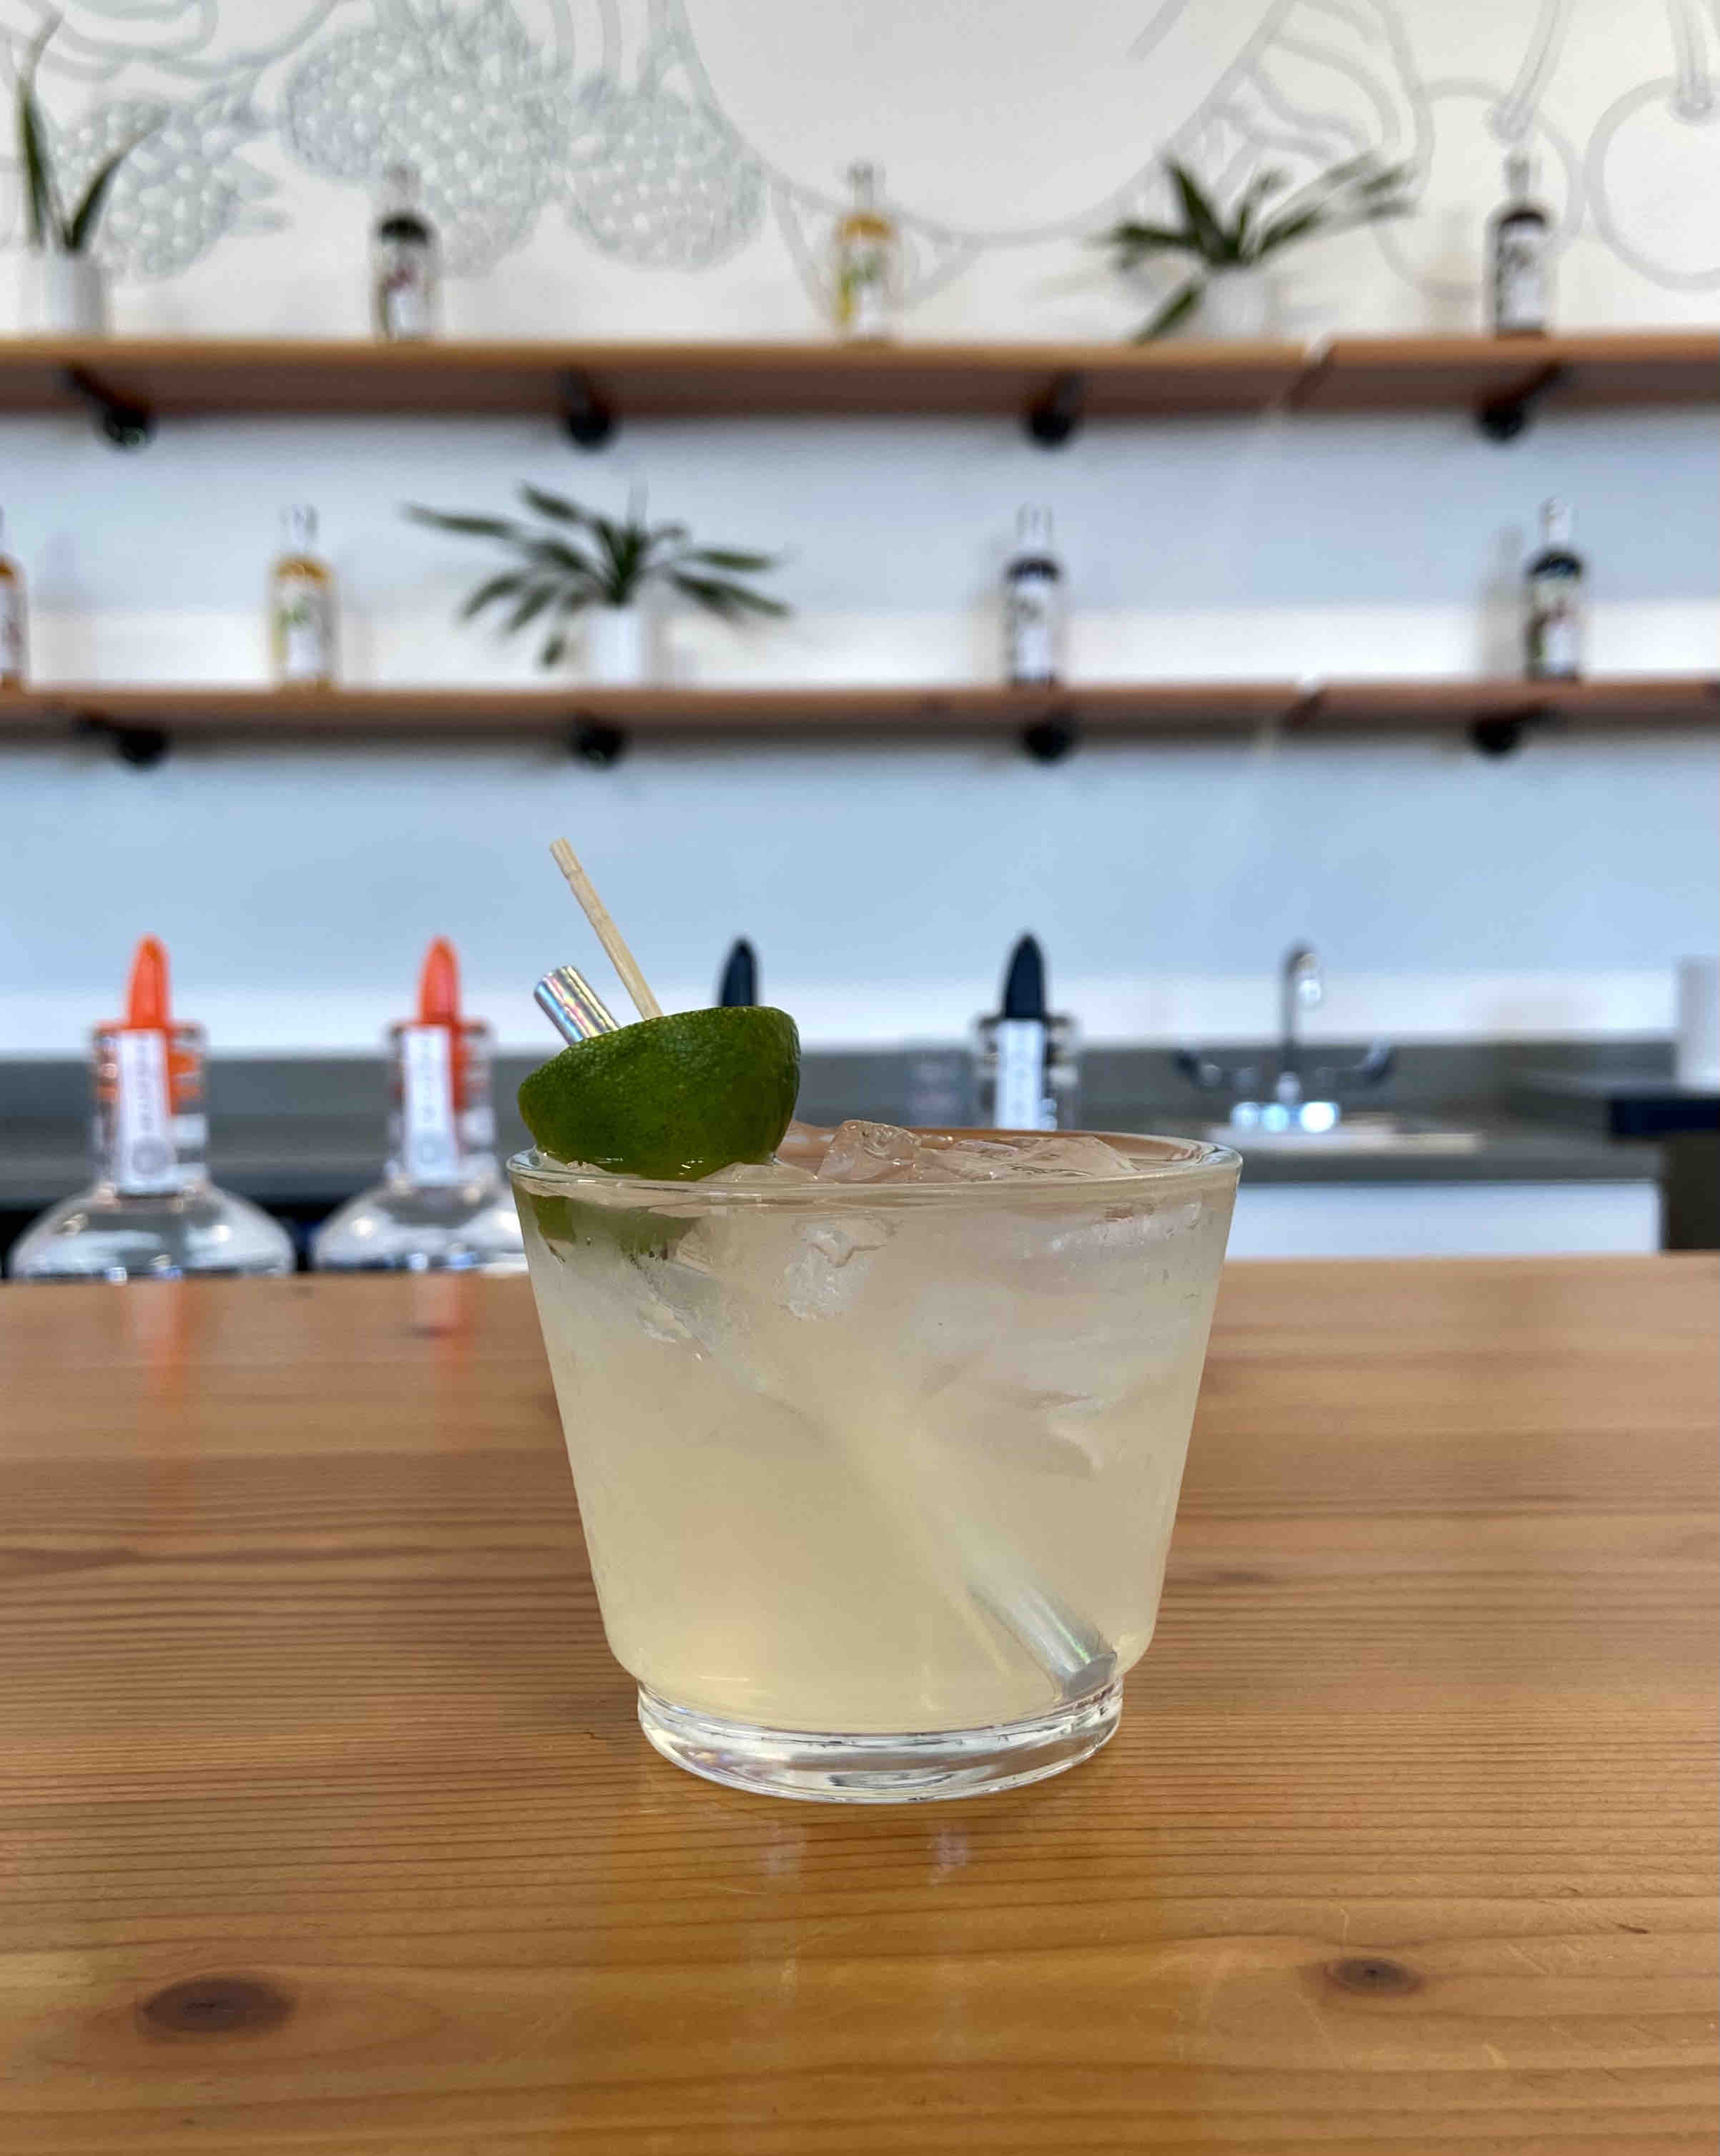 Wild Roots Spirits Cucumber & Grapefruit Gin with club soda.